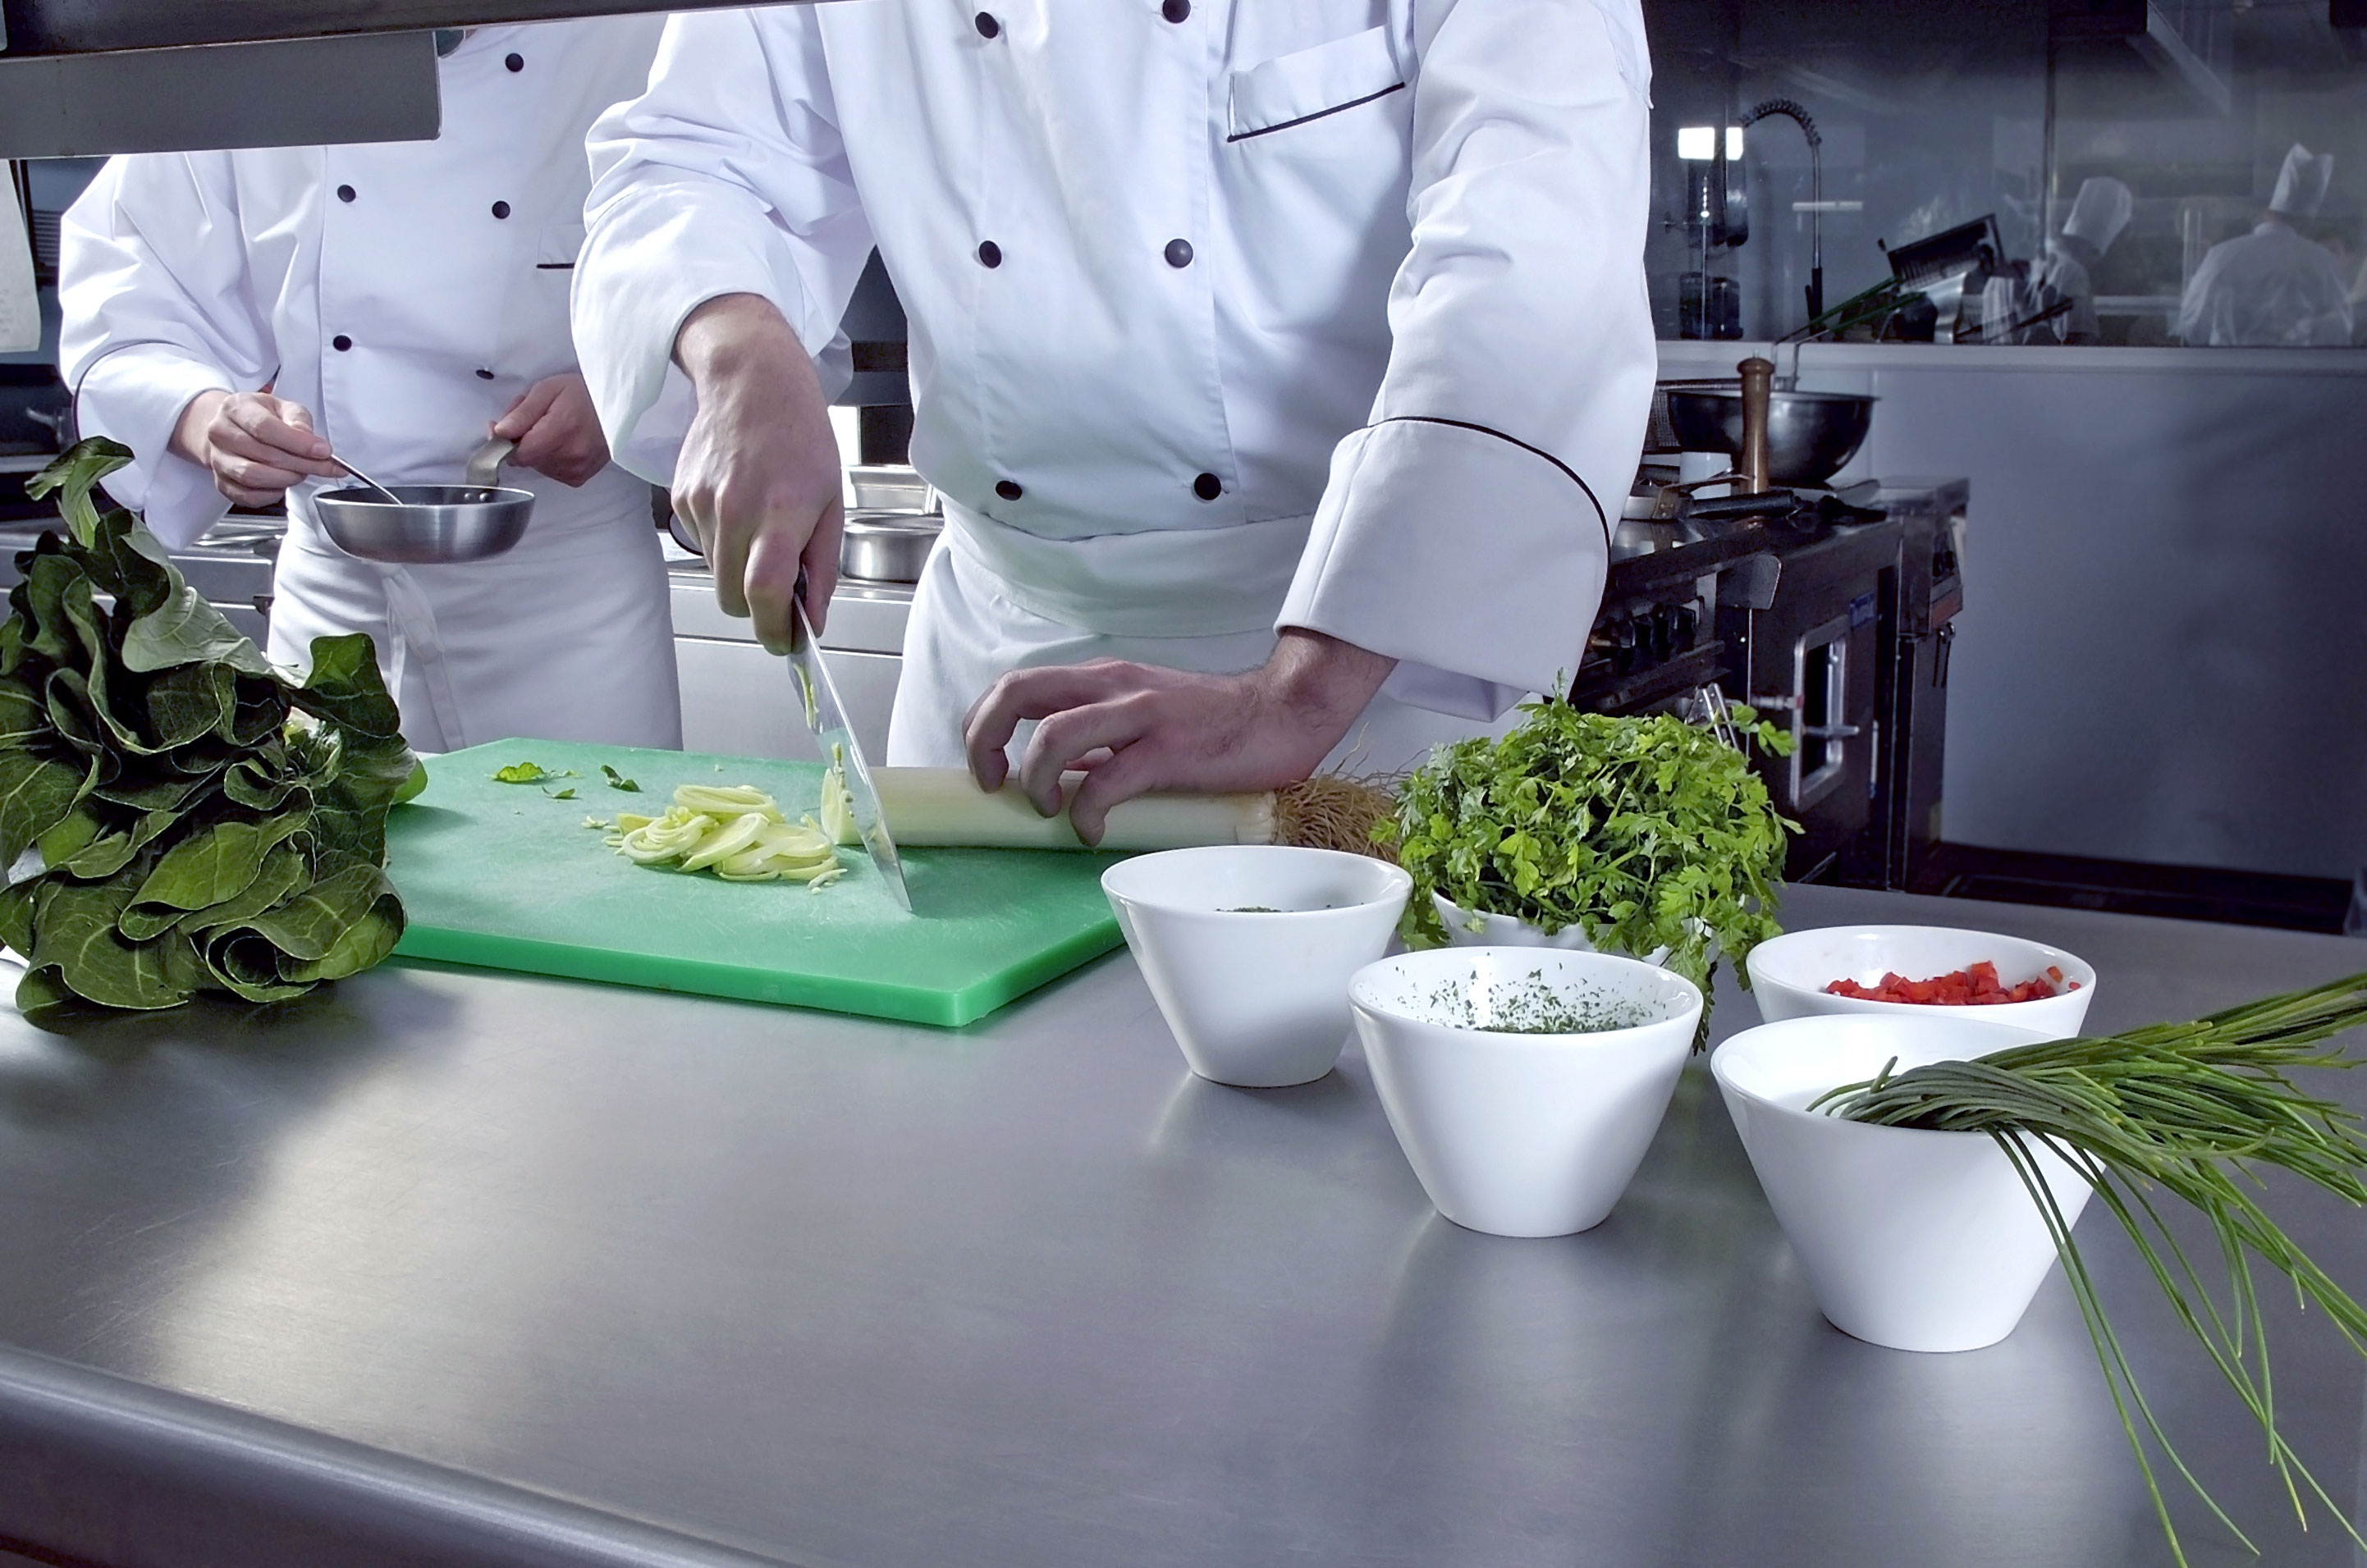 Chefs preparing food in a professional kitchen